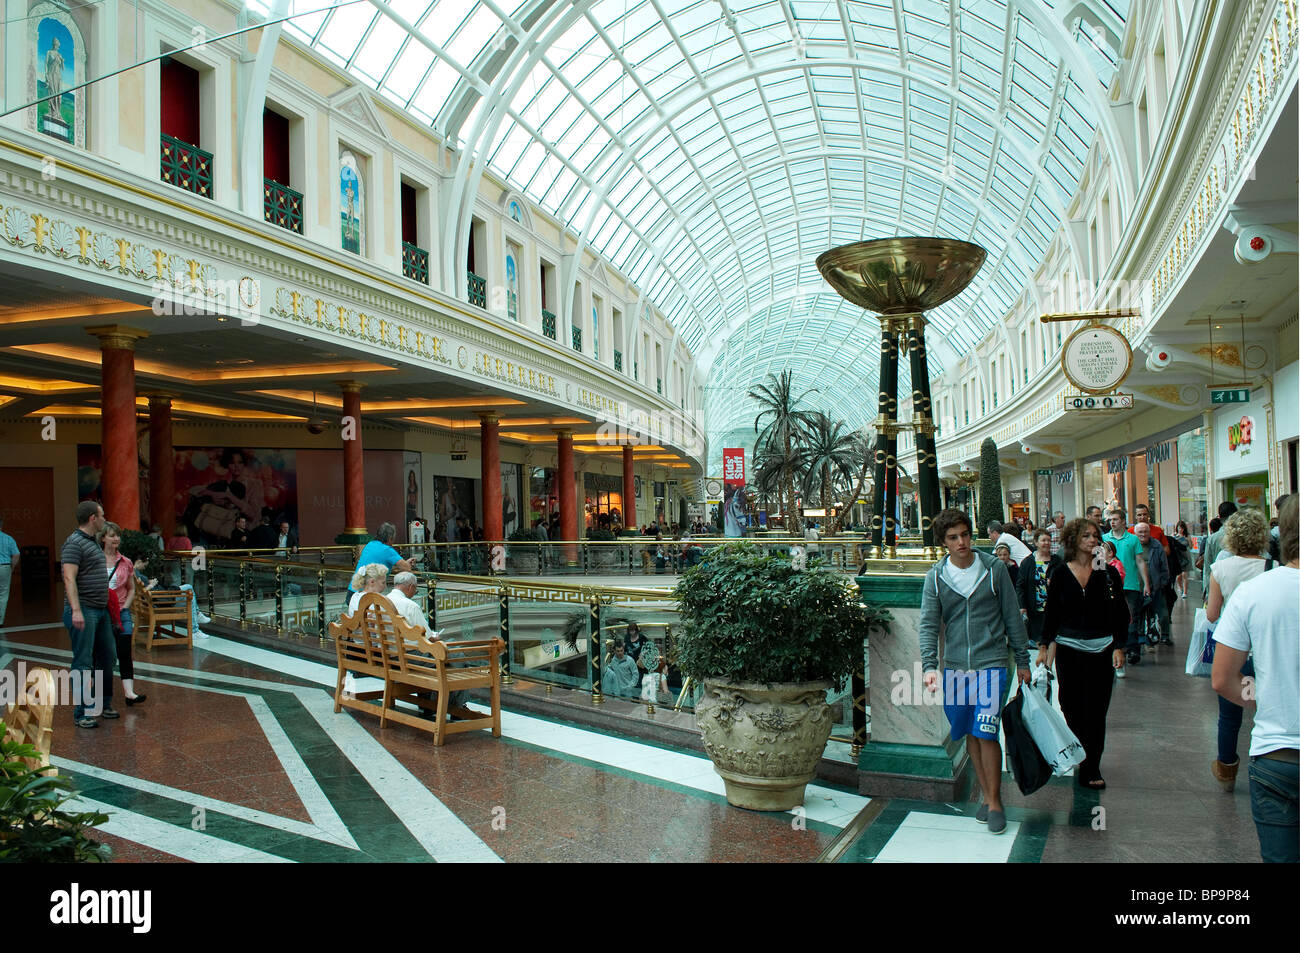 inside the Trafford centre, Manchester, England, UK - Stock Image